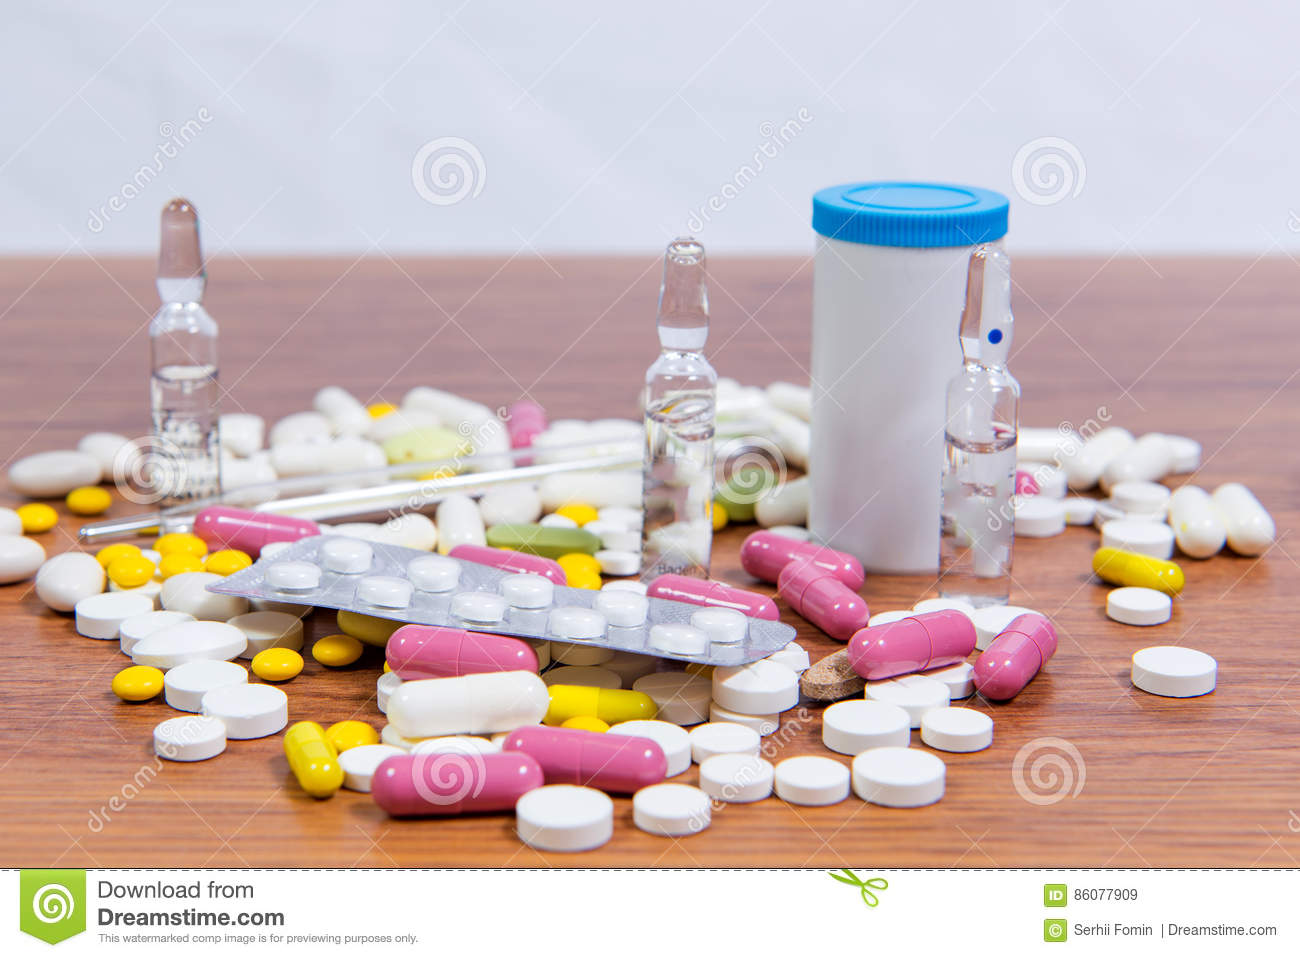 Different Types Of Drugs Are Scattered On The Table